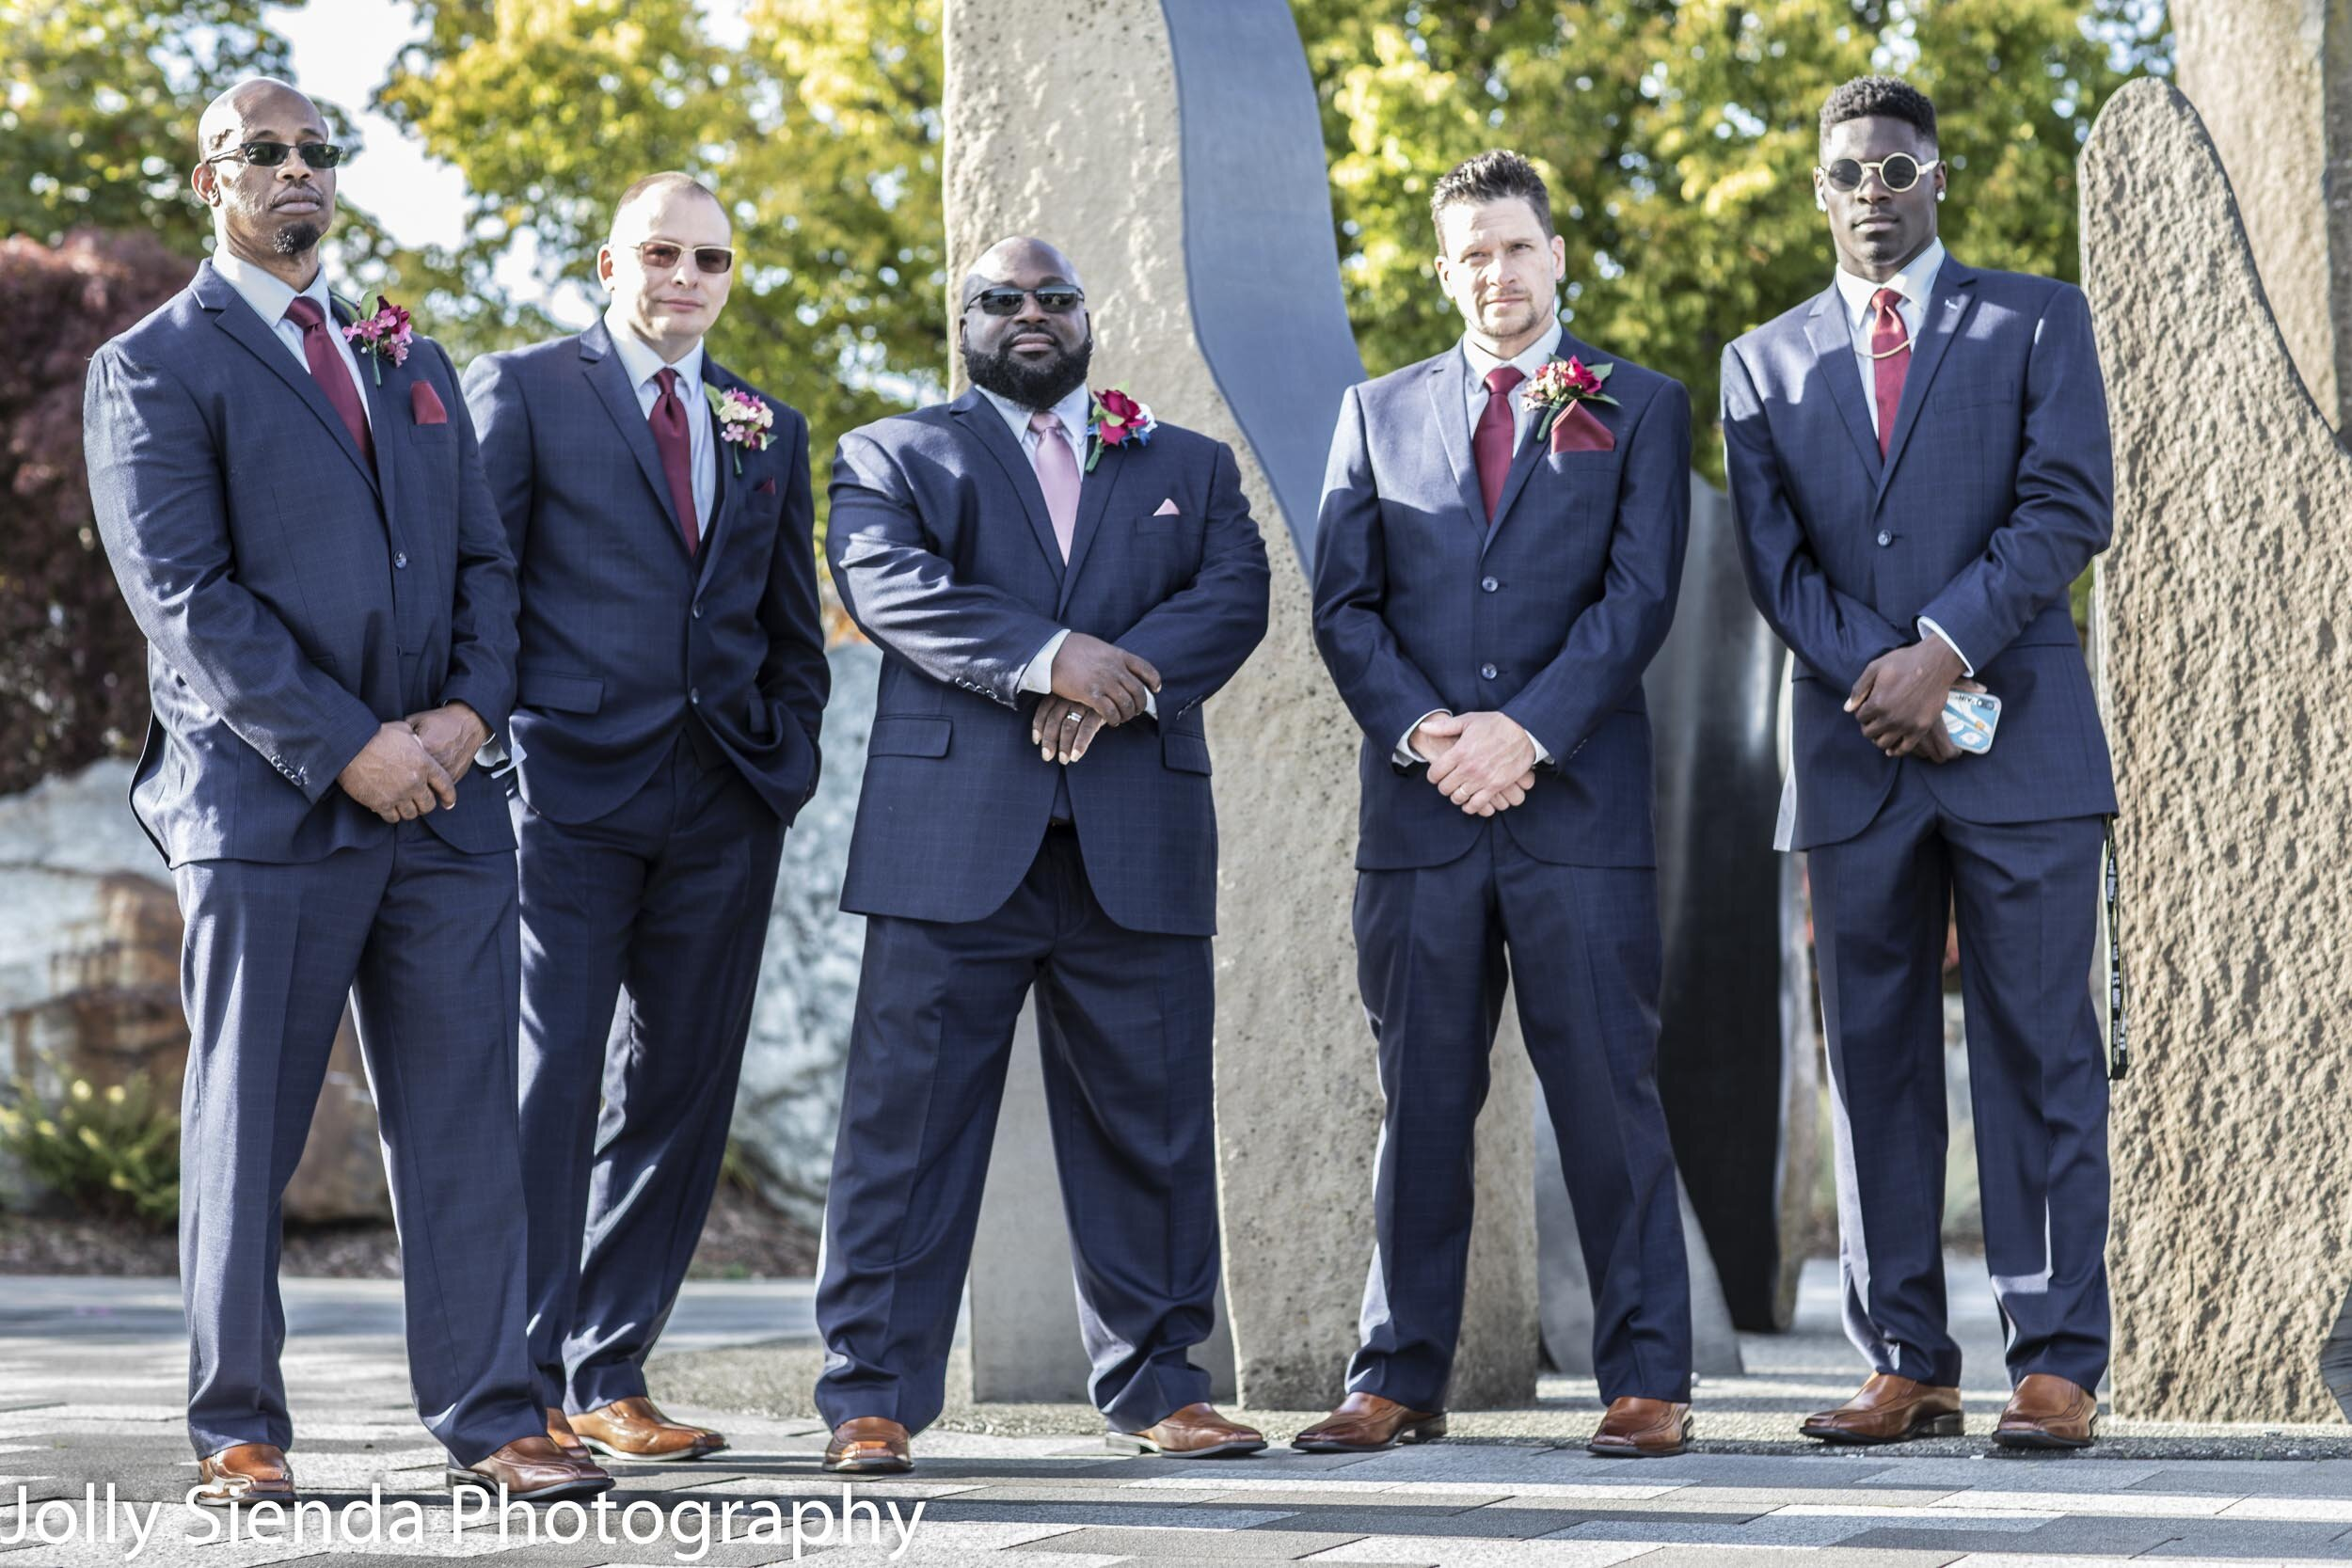 Malcolm with his groomsmen.